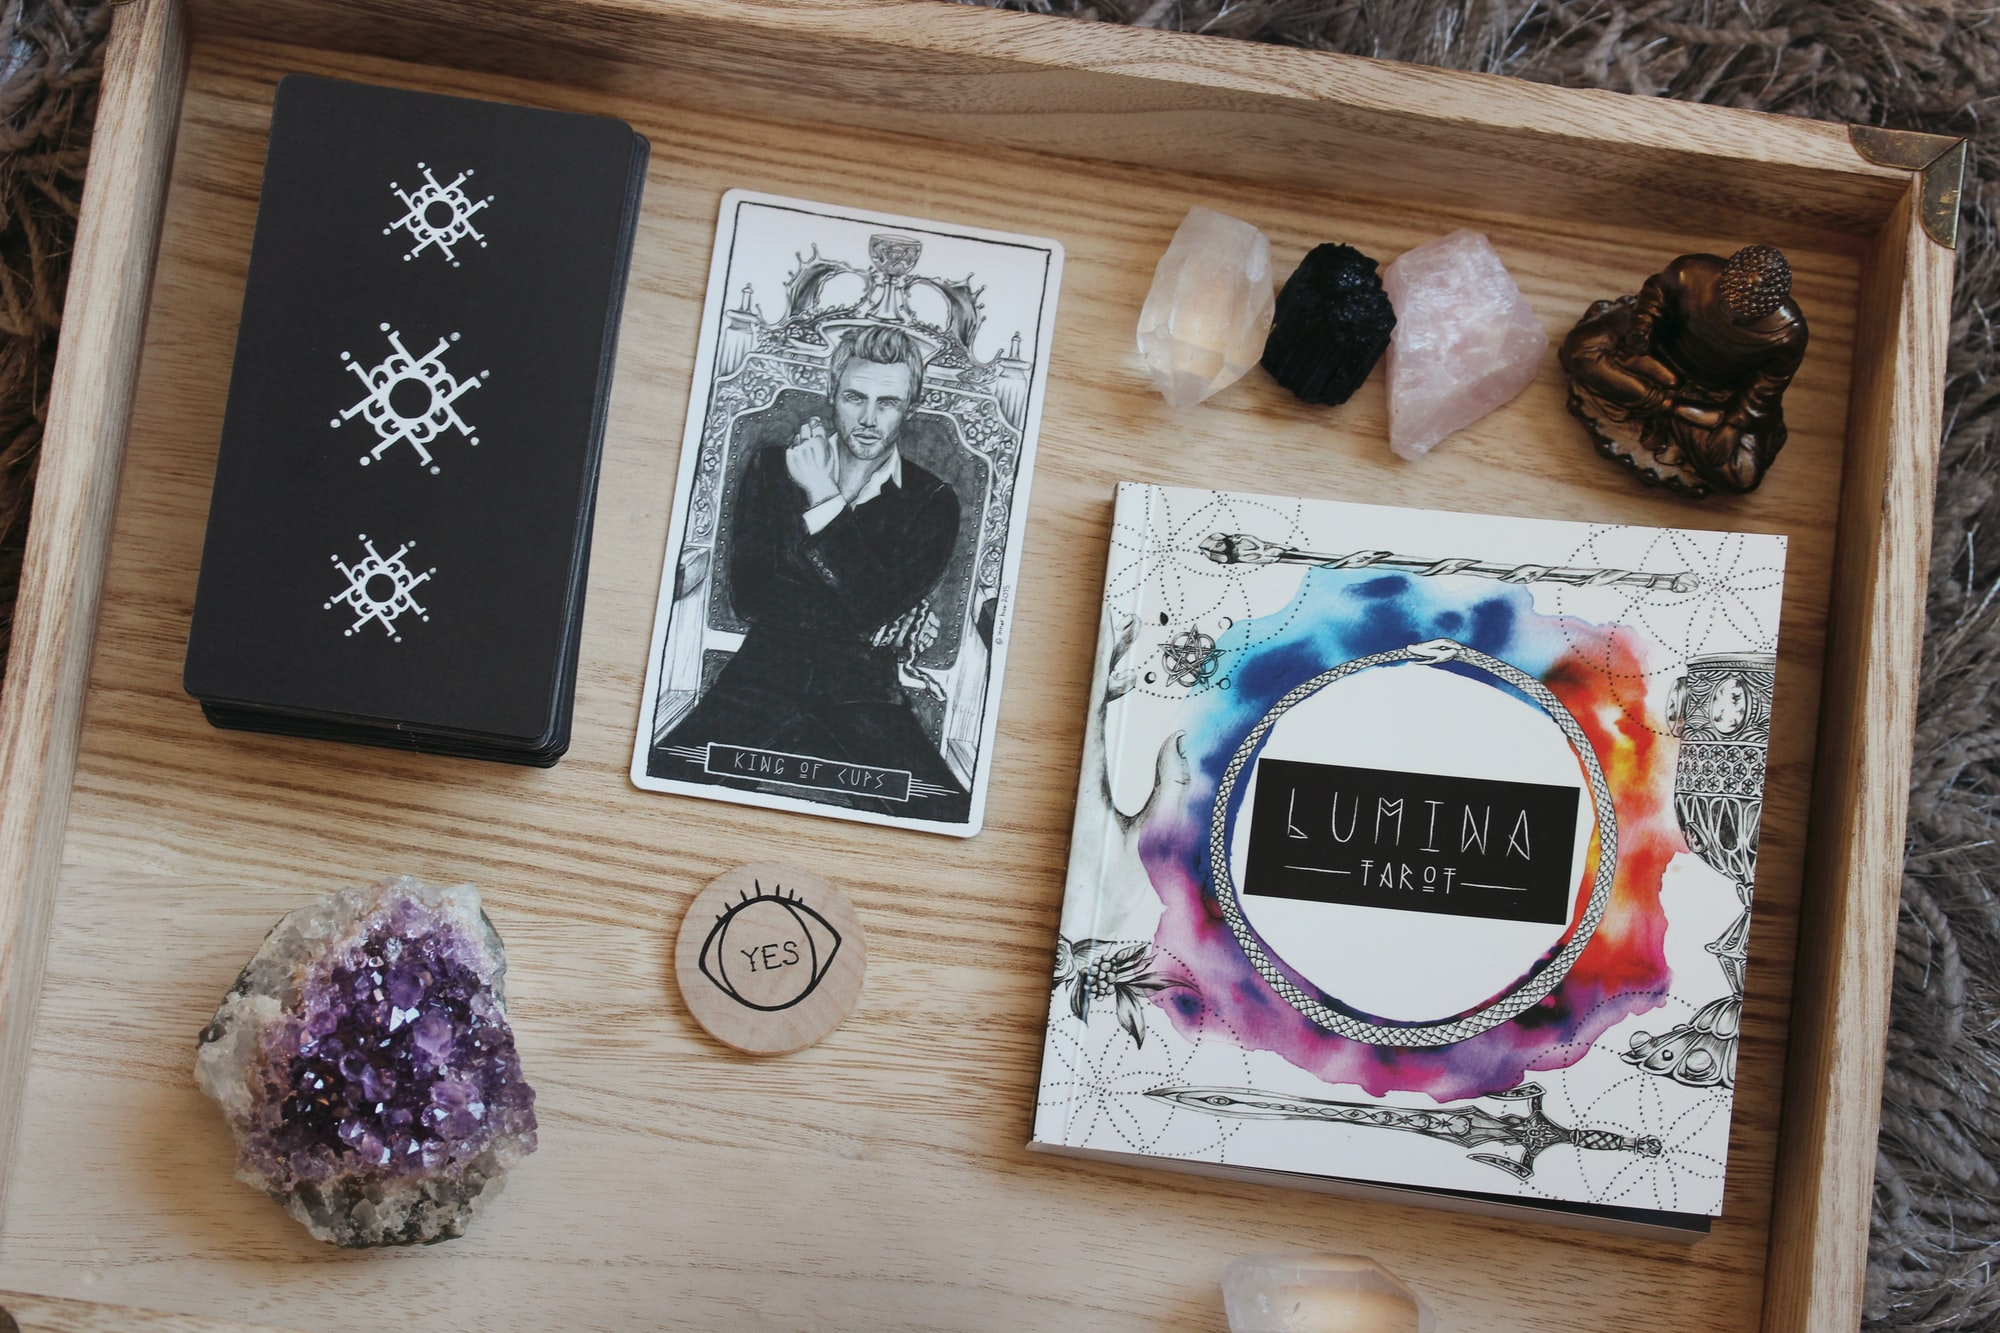 The Lumina Tarot deck of cards and guidebook sit in a wooden tray with crystals and gemstones, Buddha statue and fortune telling wooden coin that reads YES. This is a makeshift altar for Eastern practices and tarot readings.